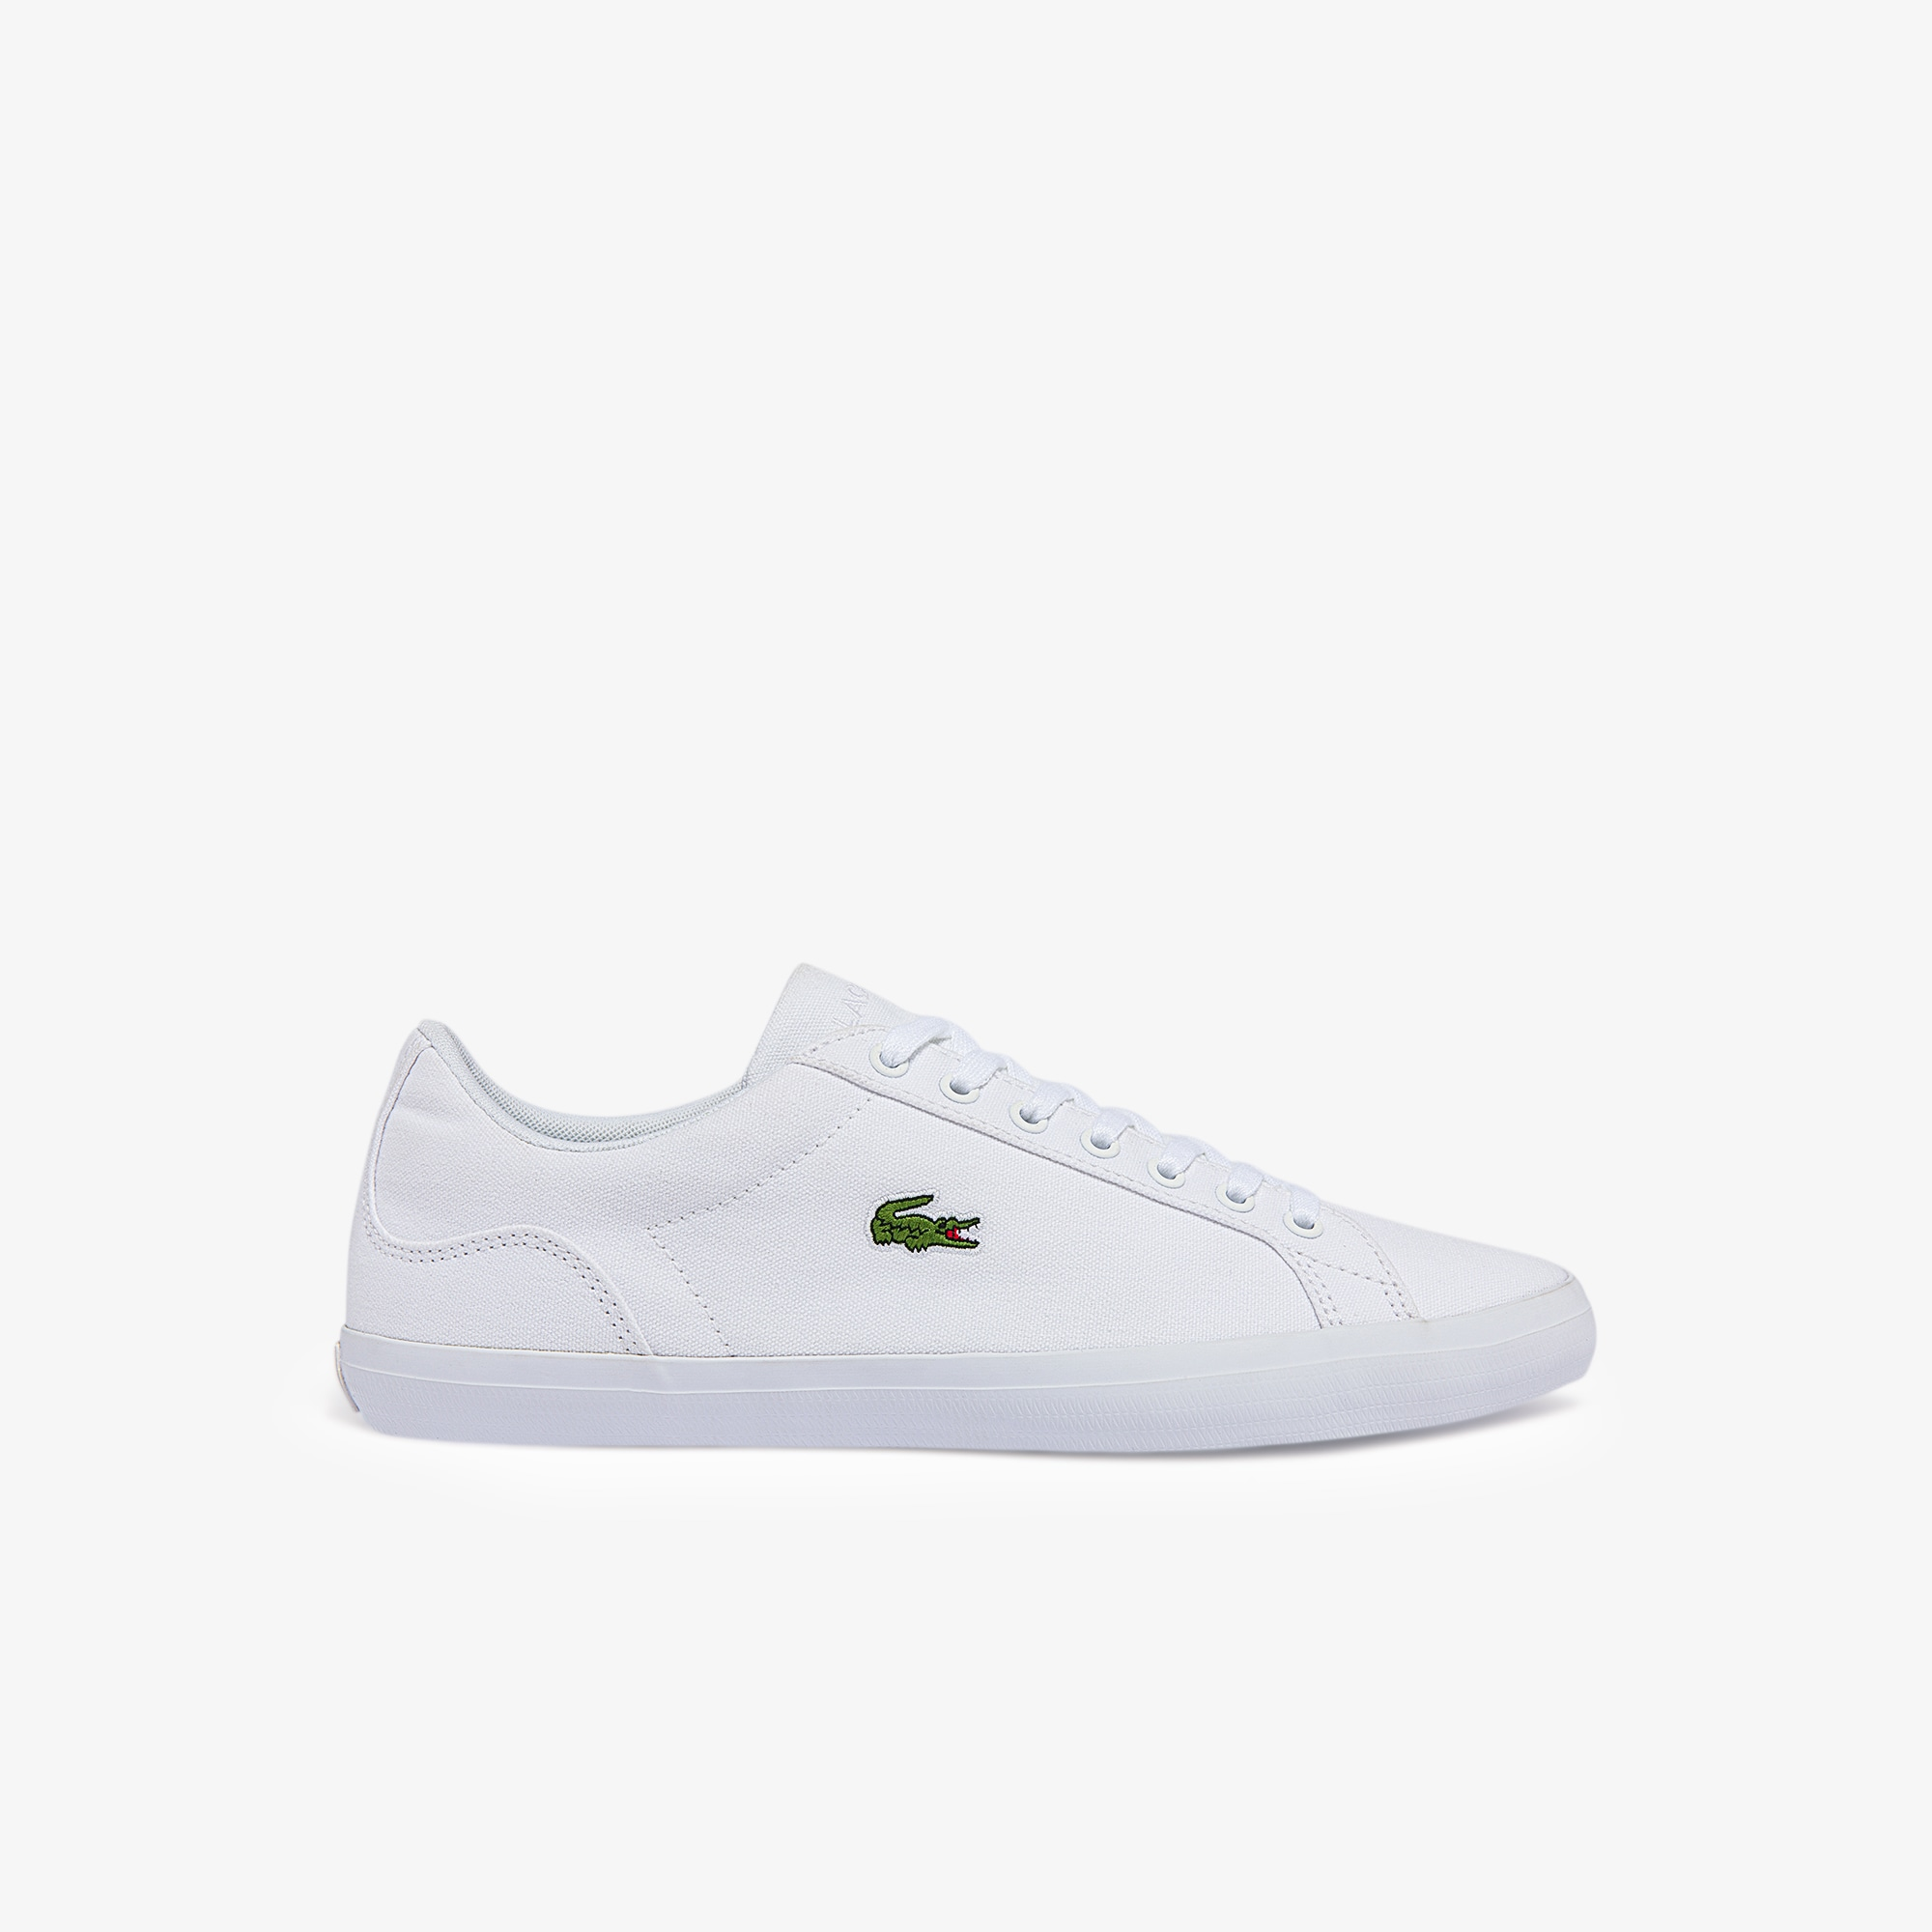 b66ab7e2a0 Sneakers homme, baskets et chaussures homme | LACOSTE